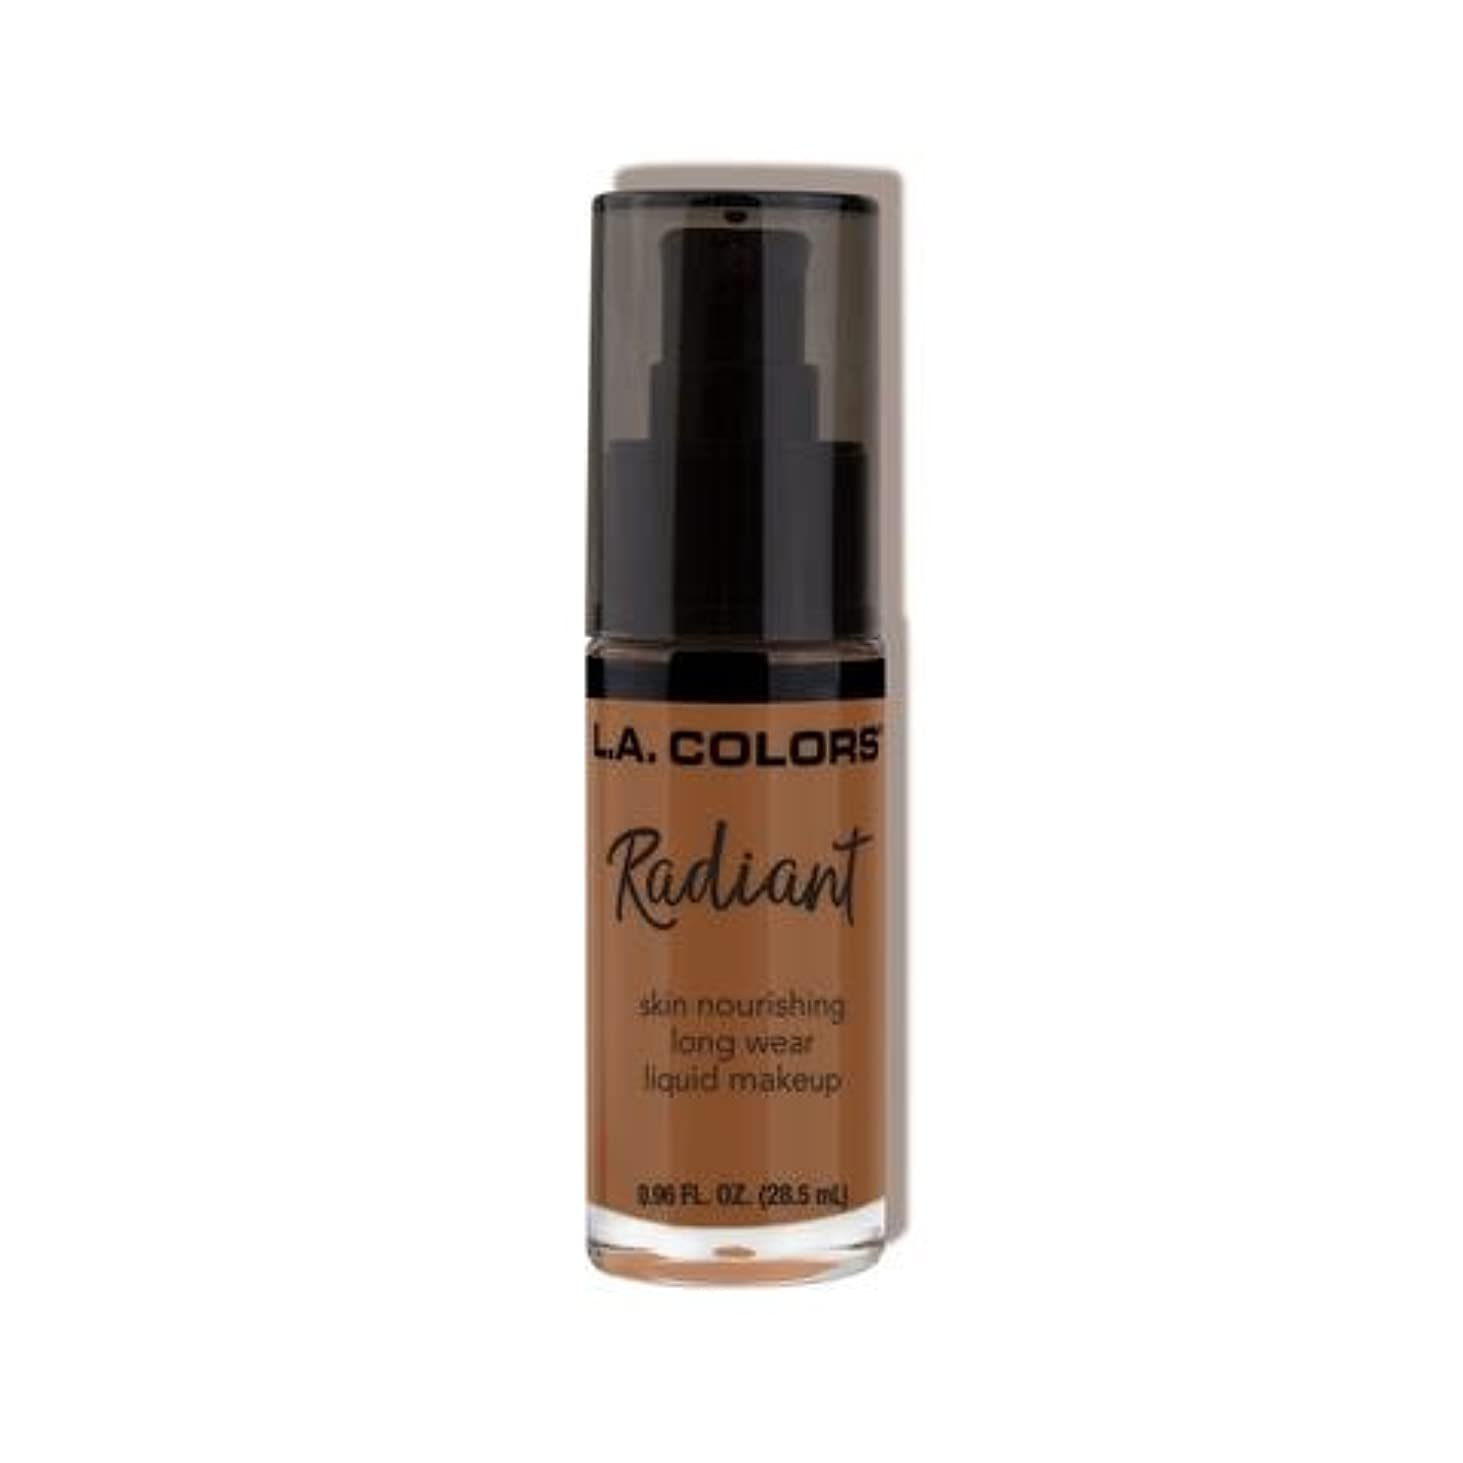 クレーン捨てる観客(3 Pack) L.A. COLORS Radiant Liquid Makeup - Ginger (並行輸入品)